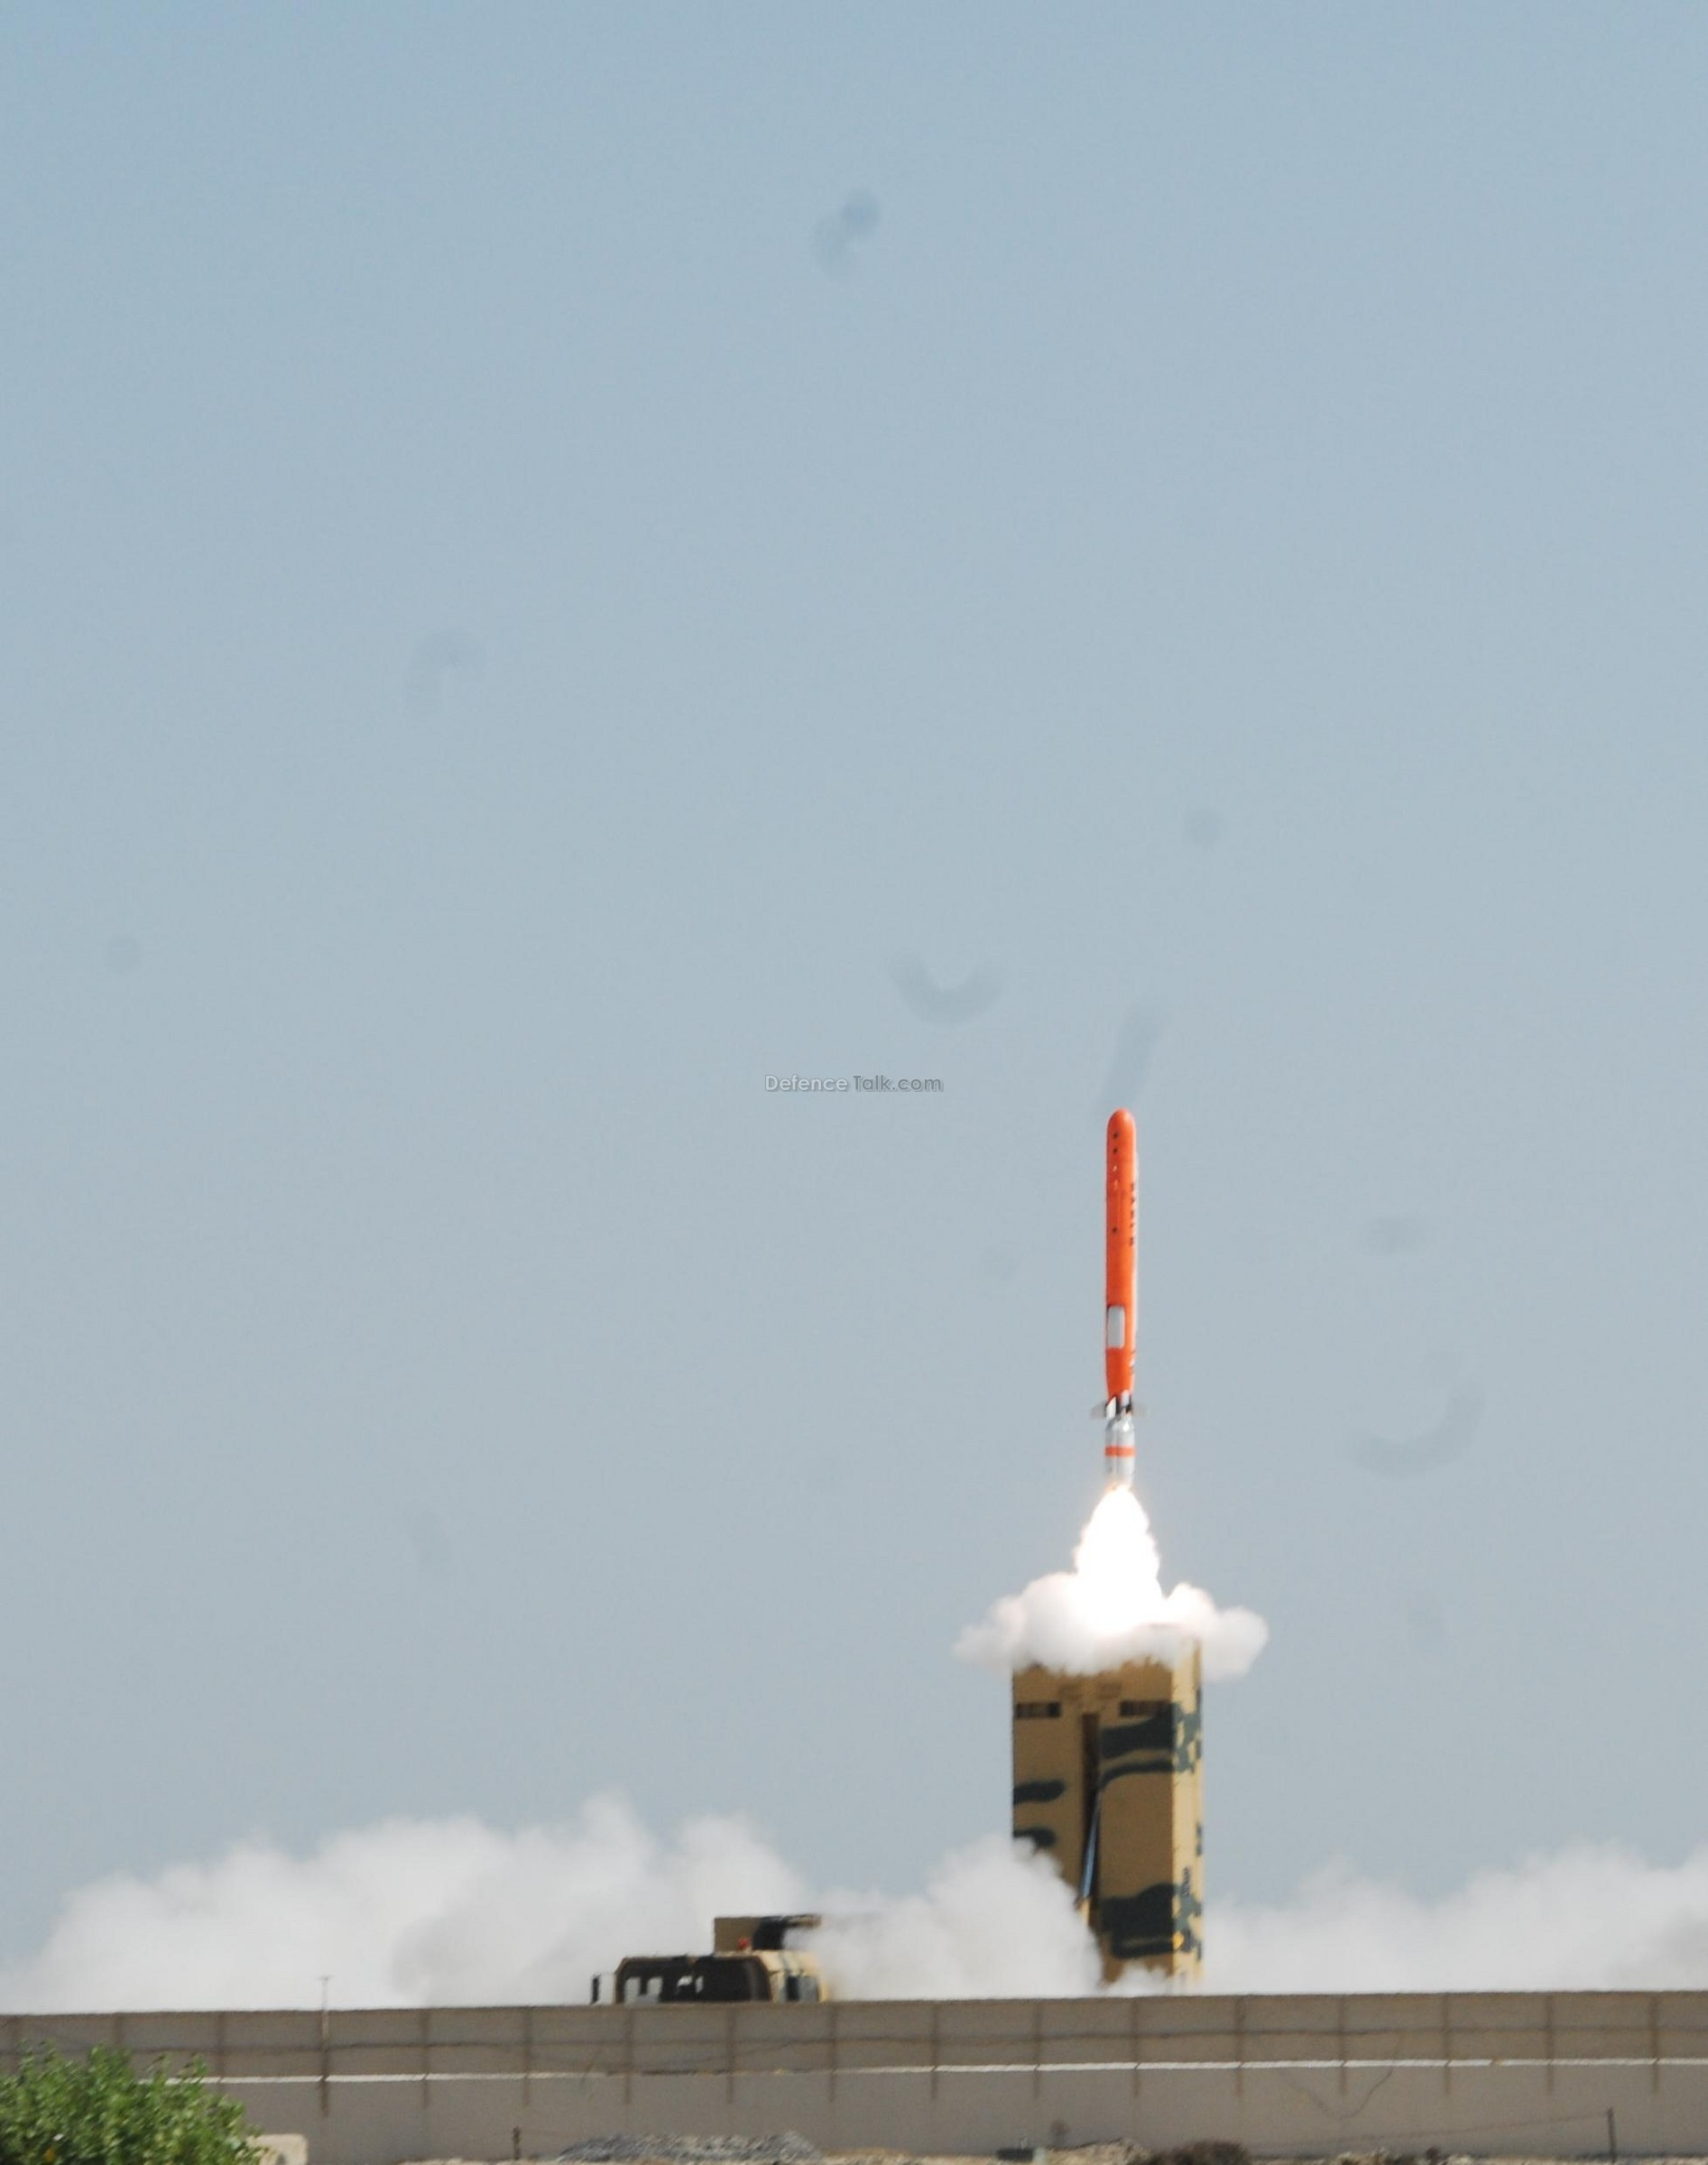 Babur Cruise missile Test - Pakistan